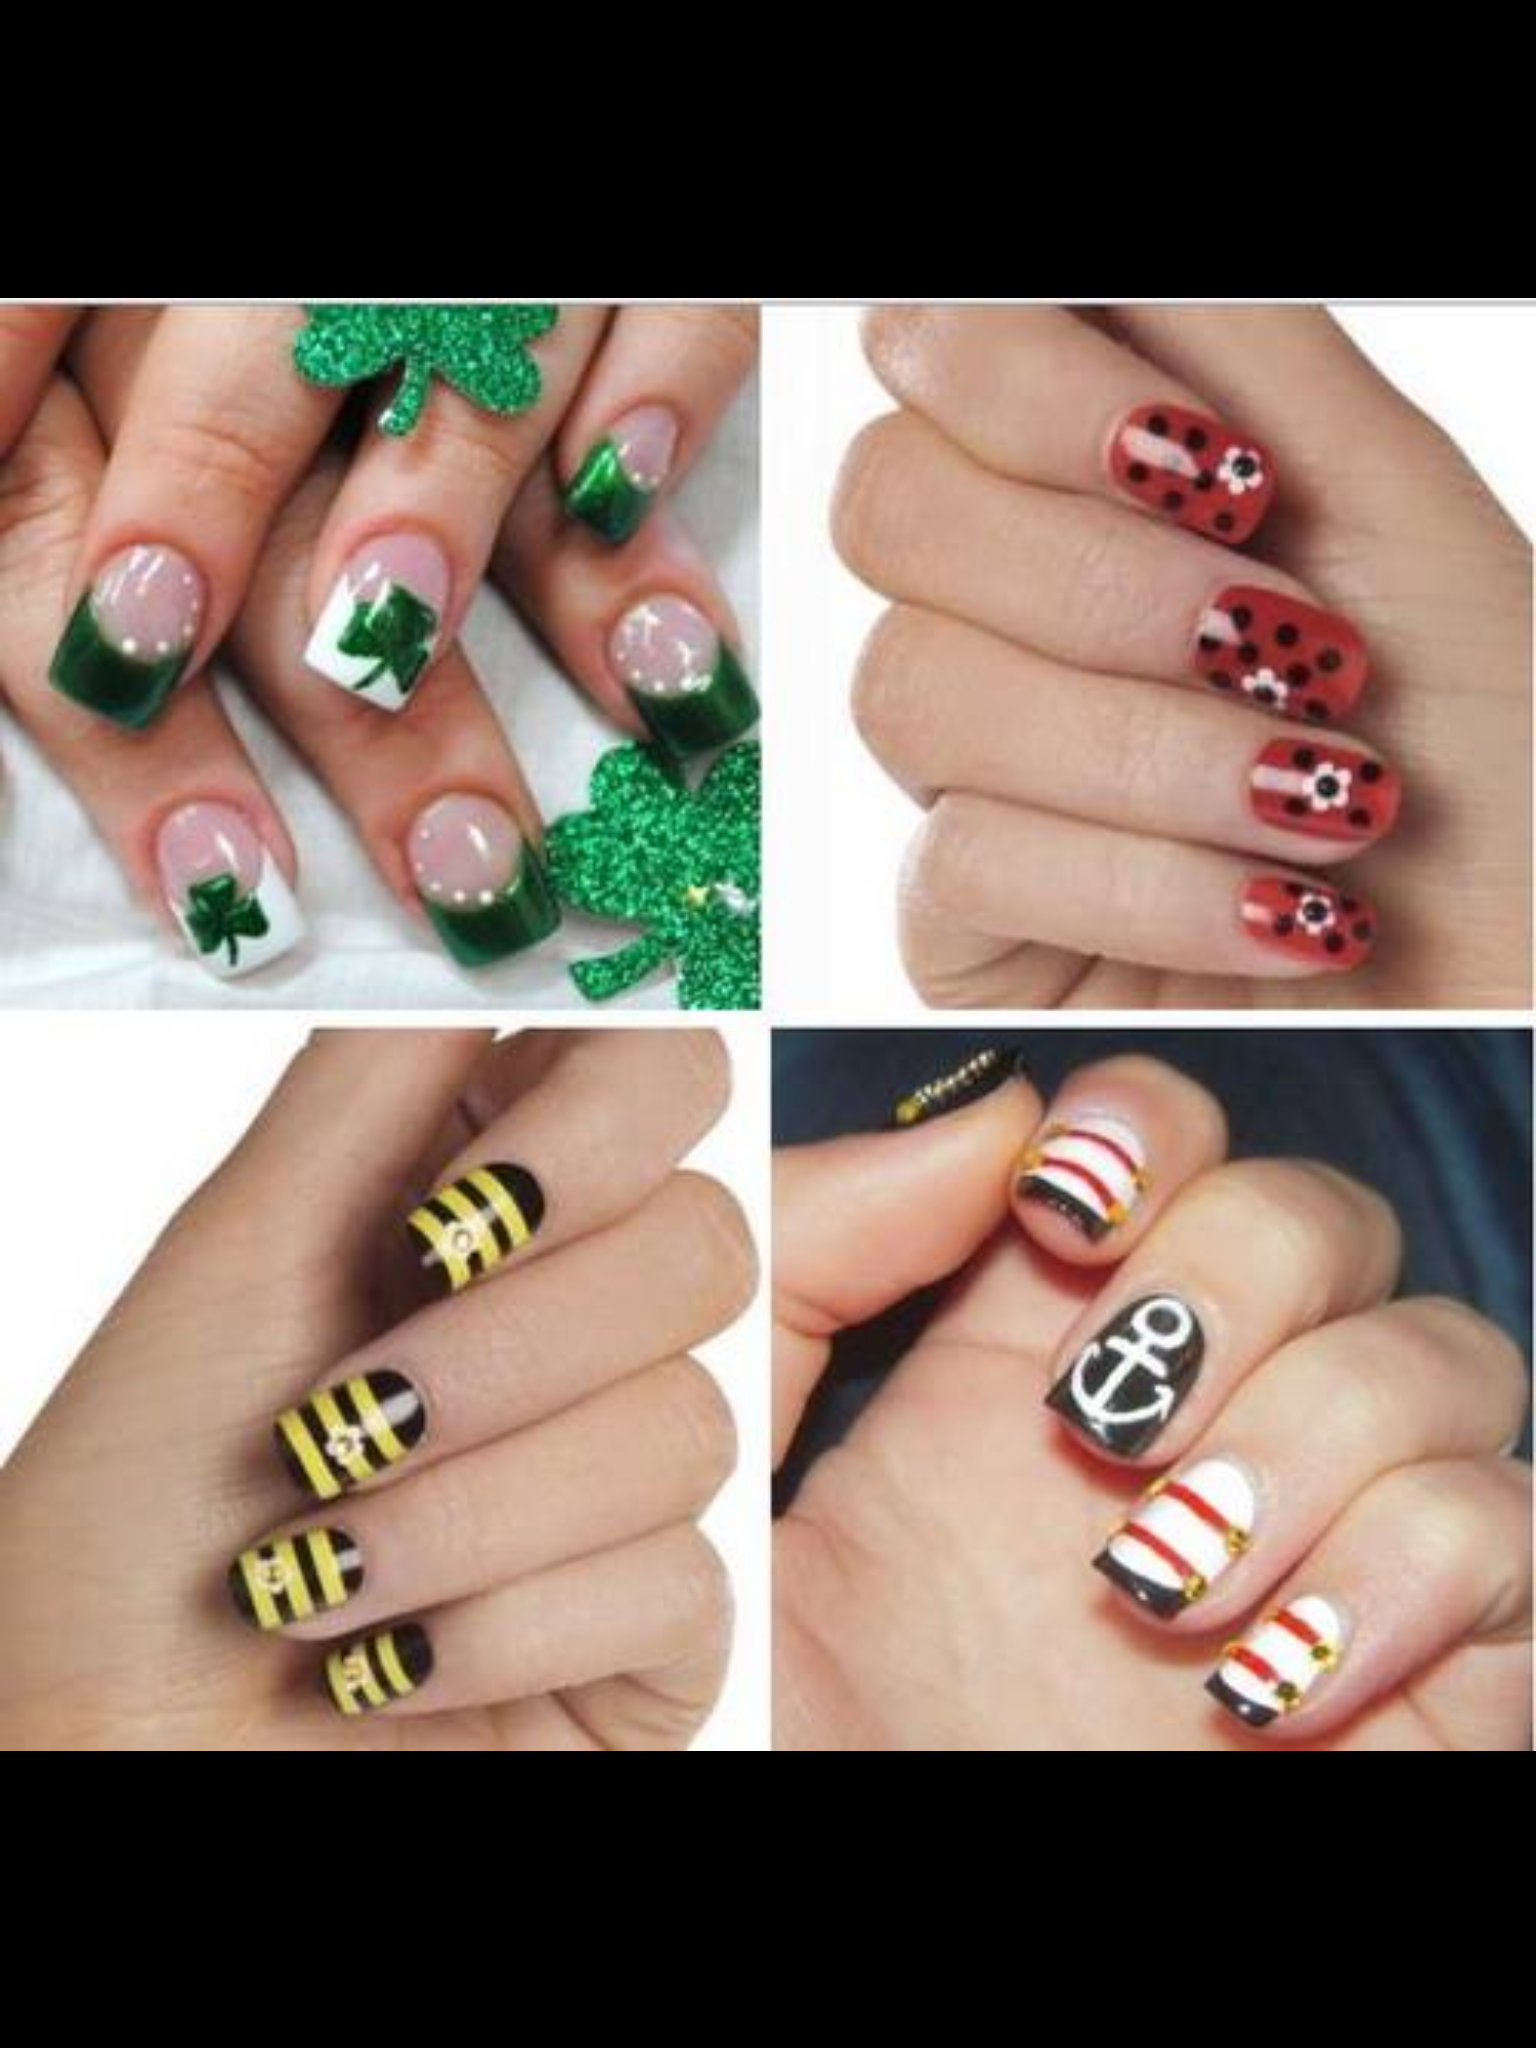 Pin by kathy smith on for the love of nails pinterest